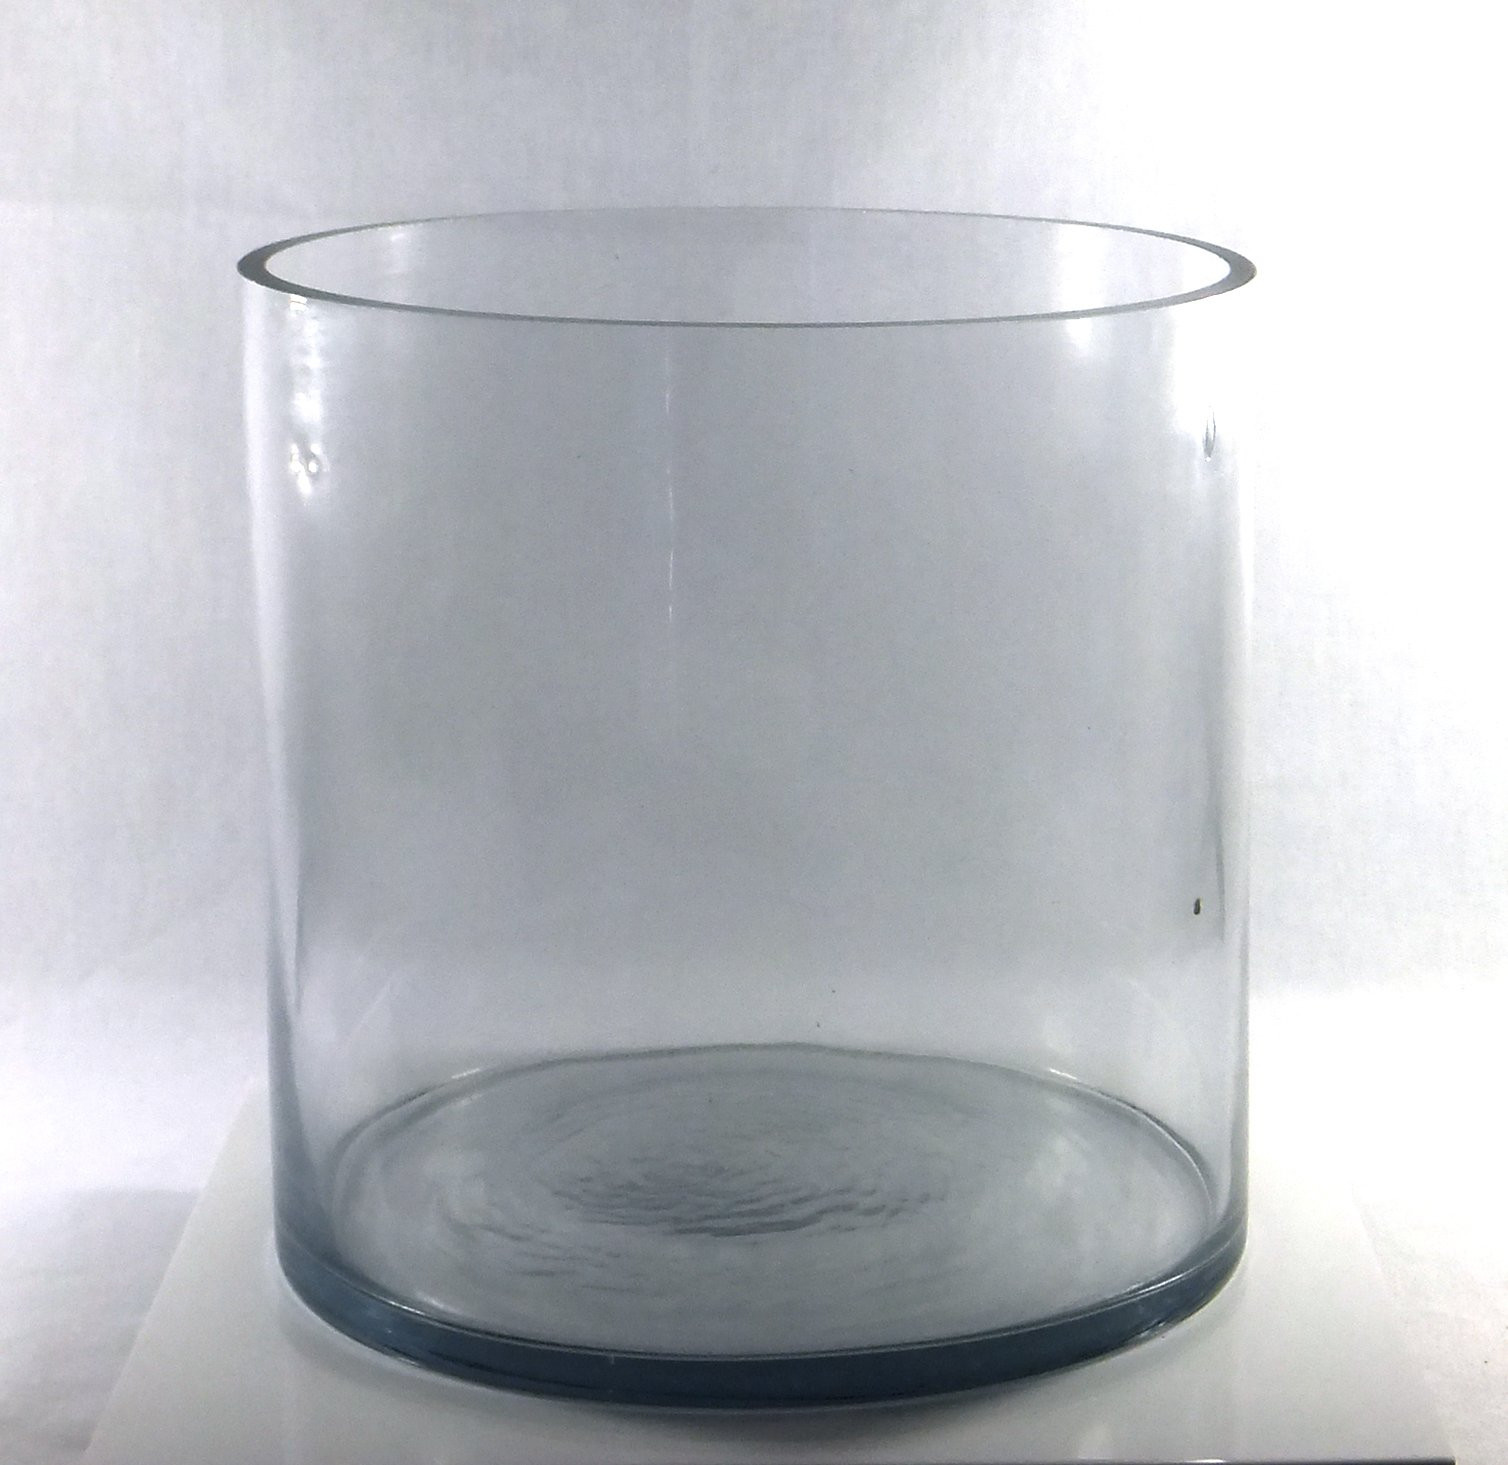 round black glass vase of buy 8 inch round large glass vase 8 clear cylinder oversize with regard to 8 inch round large glass vase 8 clear cylinder oversize centerpiece 8x8